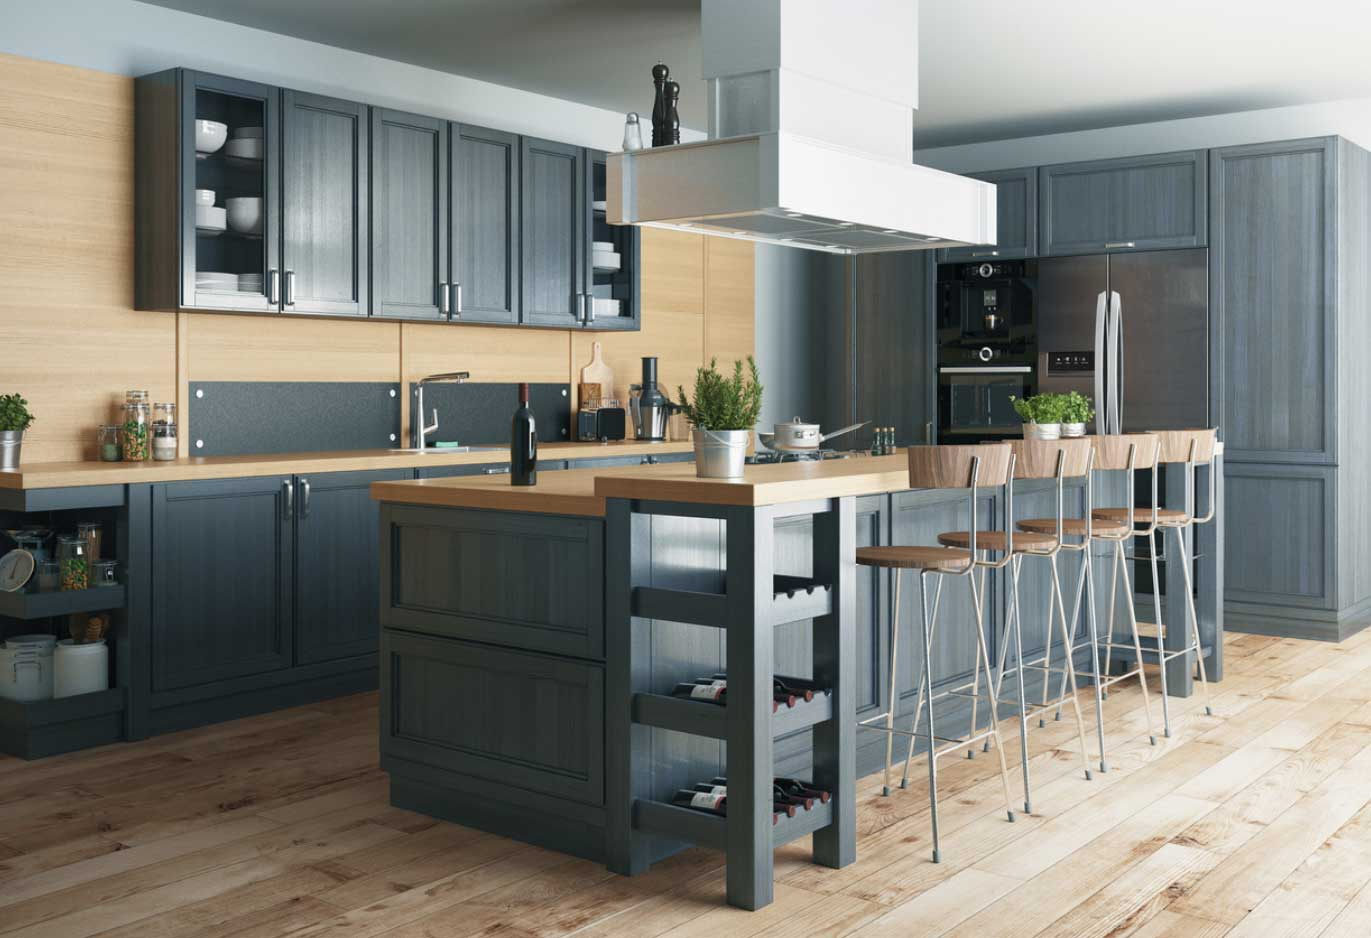 Top 20 Kitchen Design Software That Will Make Designing Easy Cabinet Now